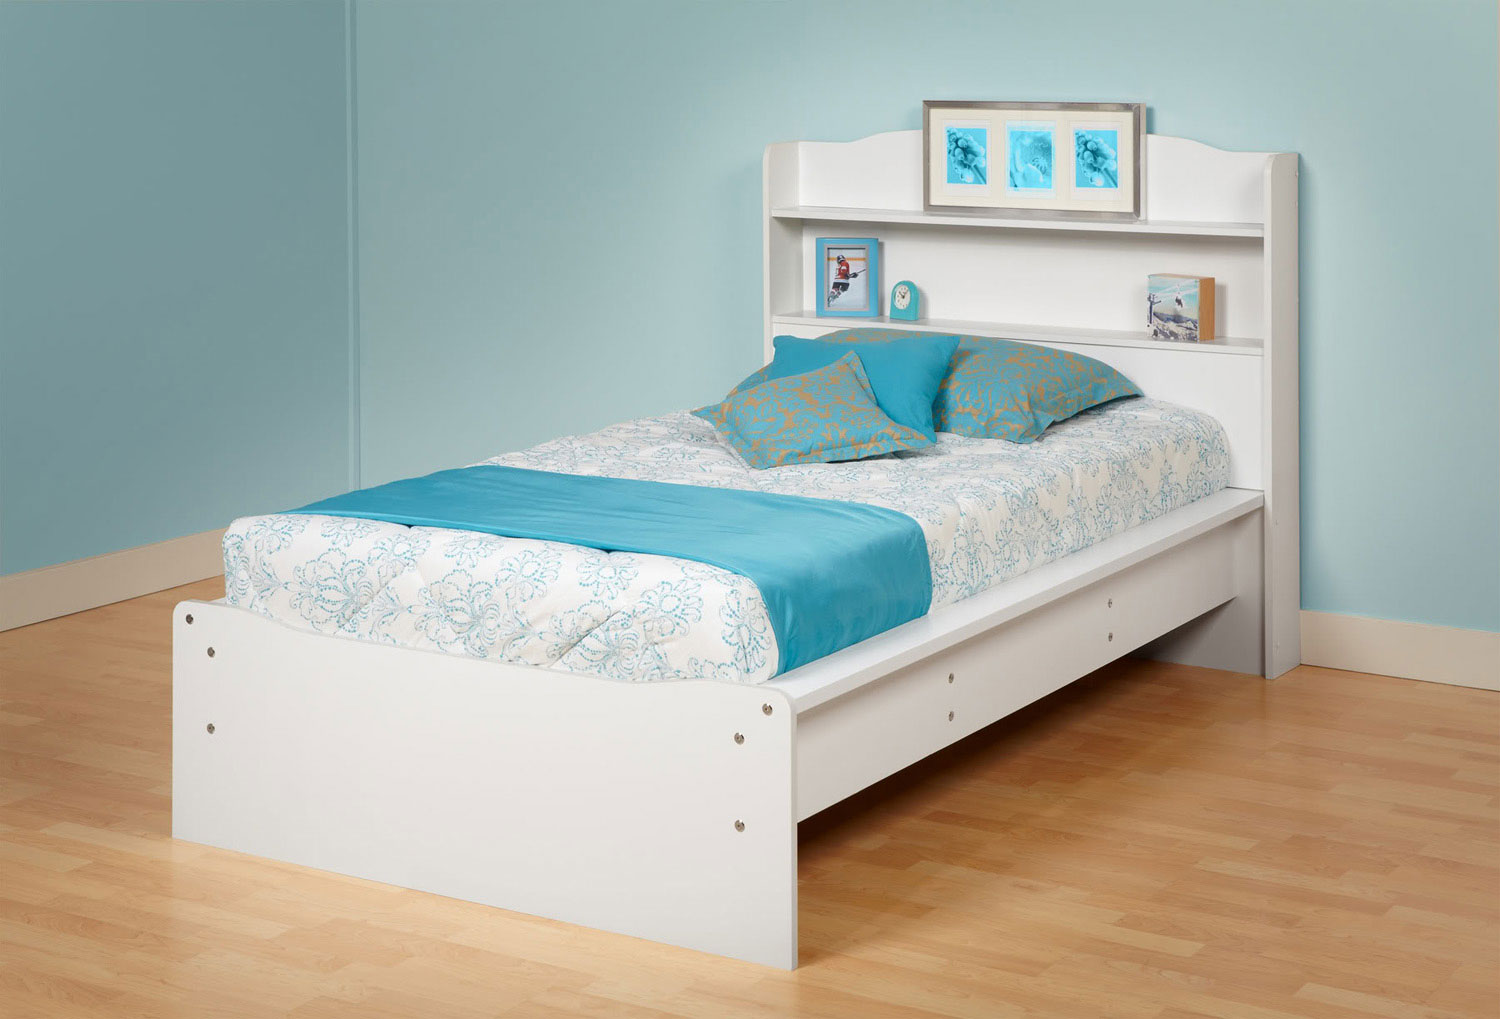 Prepac Aspen Platform Bed with Integrated Headboard - White